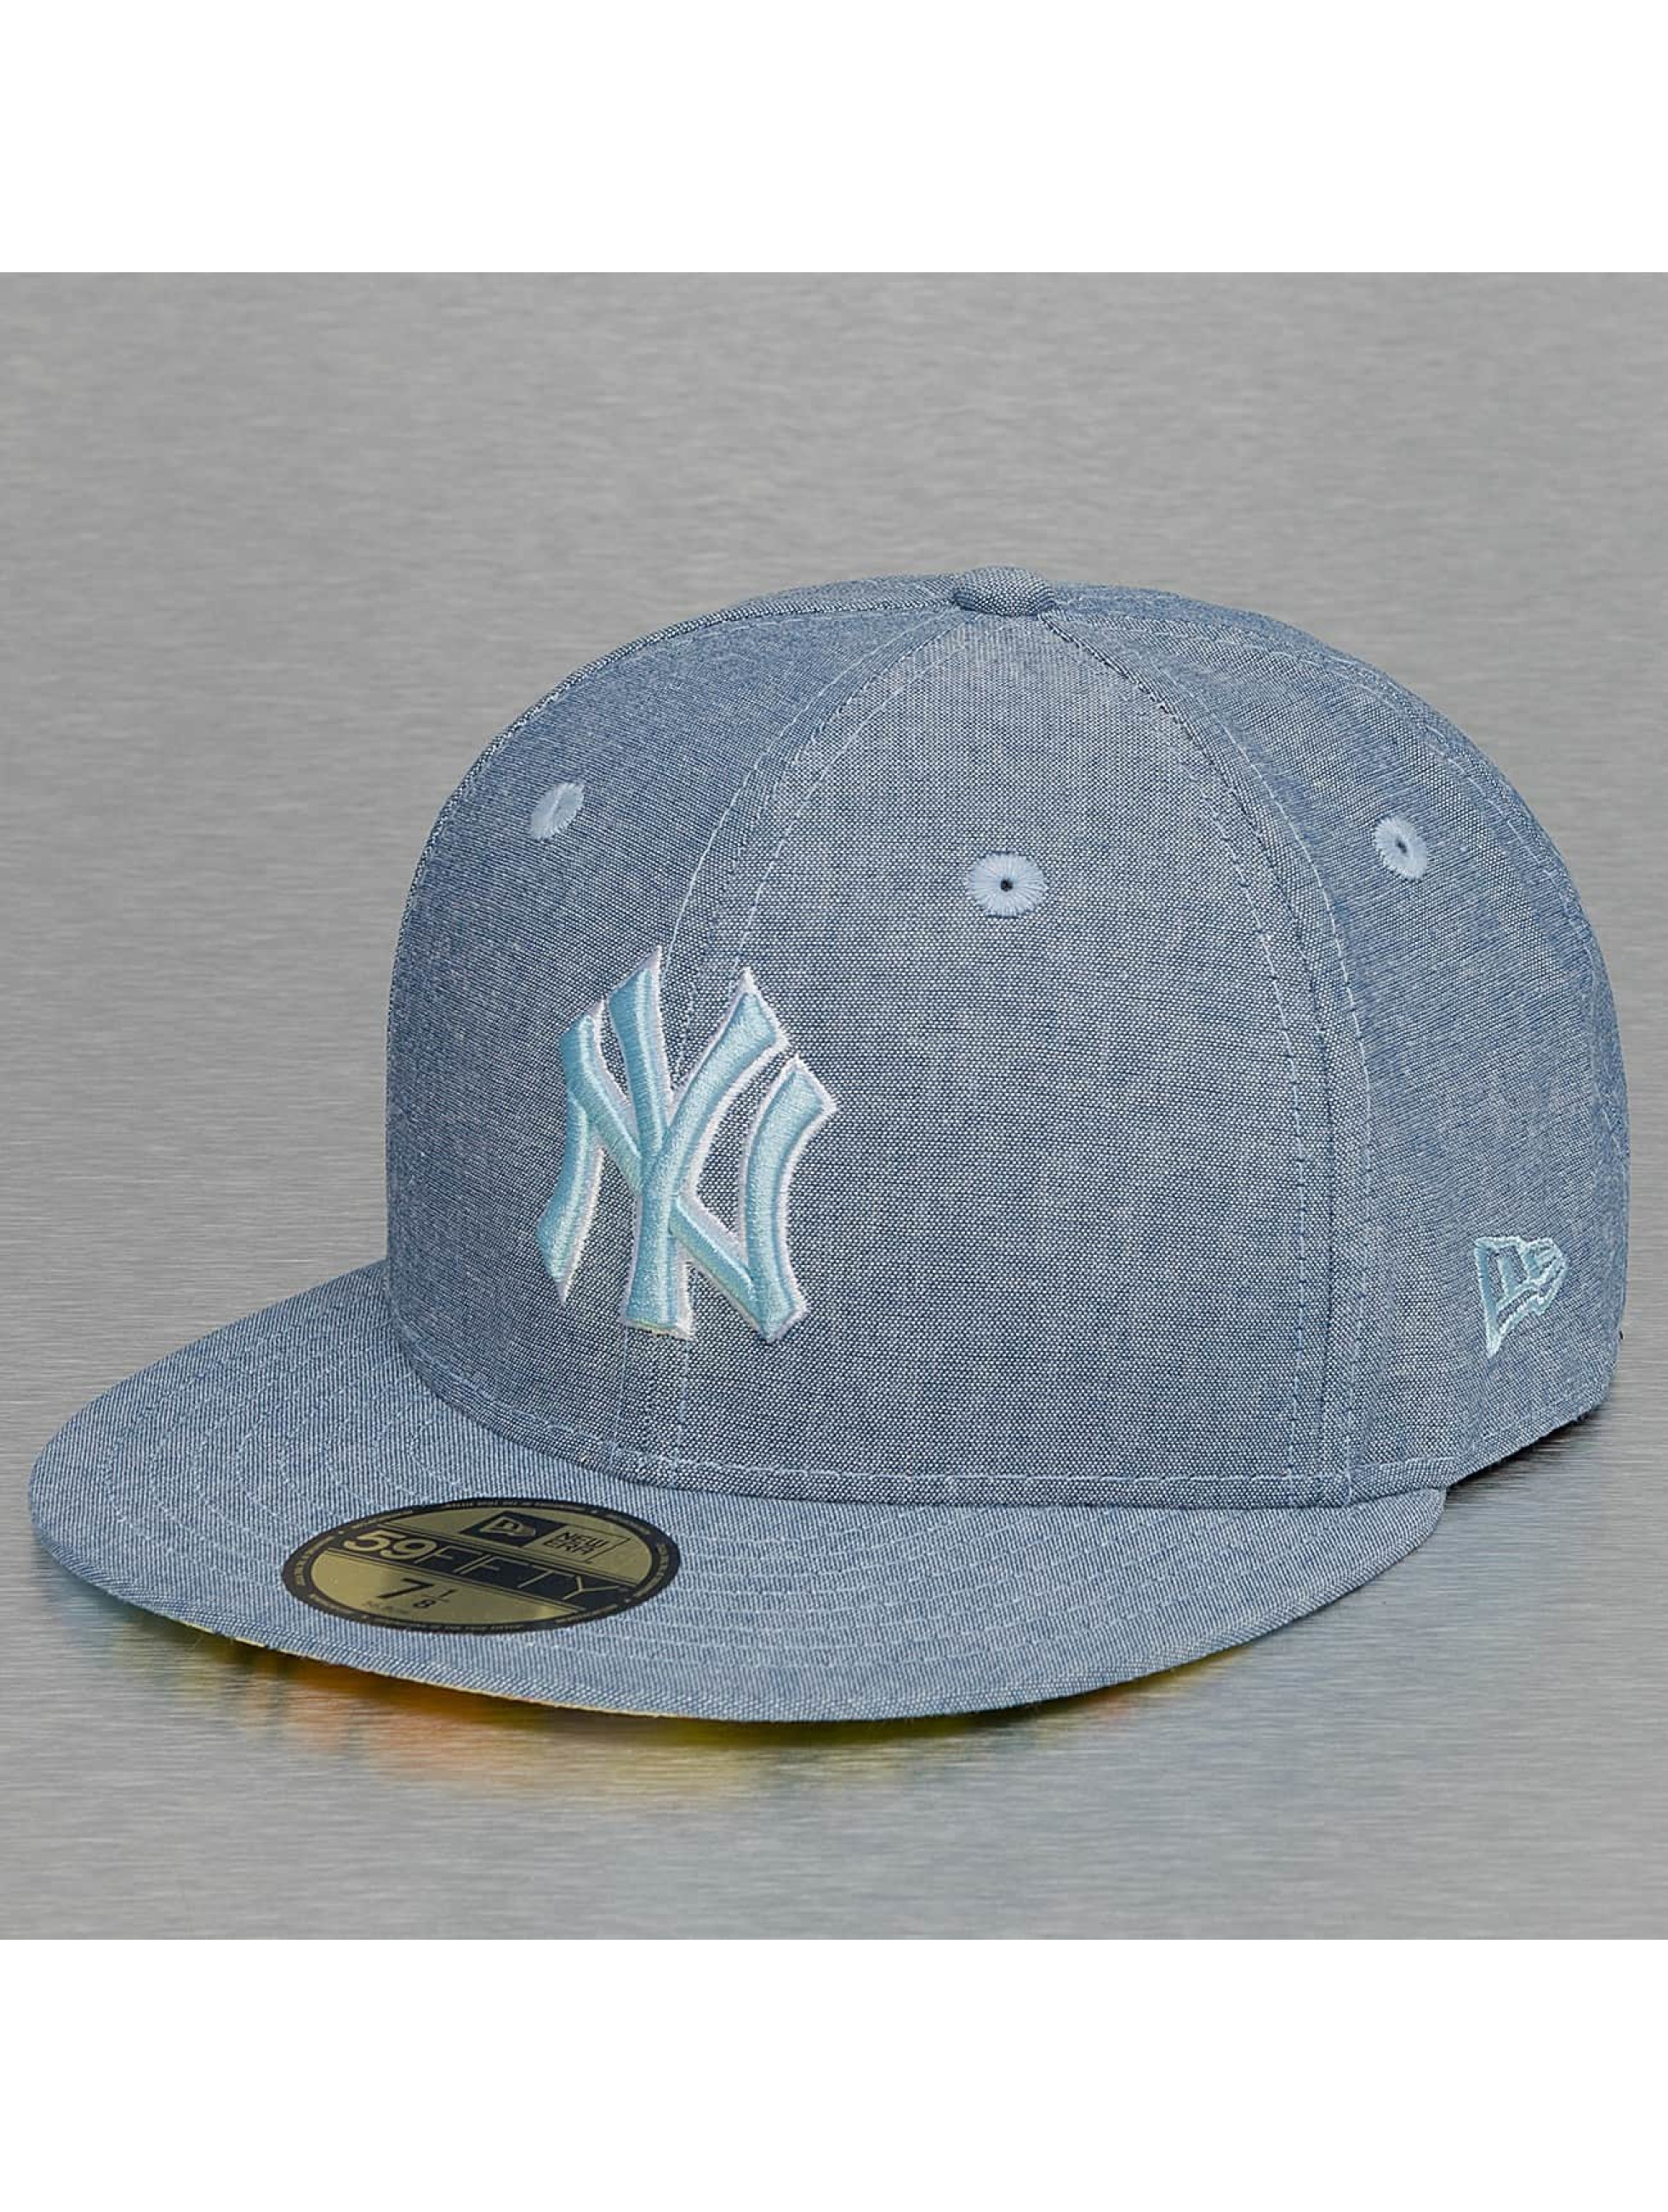 New Era Casquette Fitted All Over Chambrey New York Yankees bleu